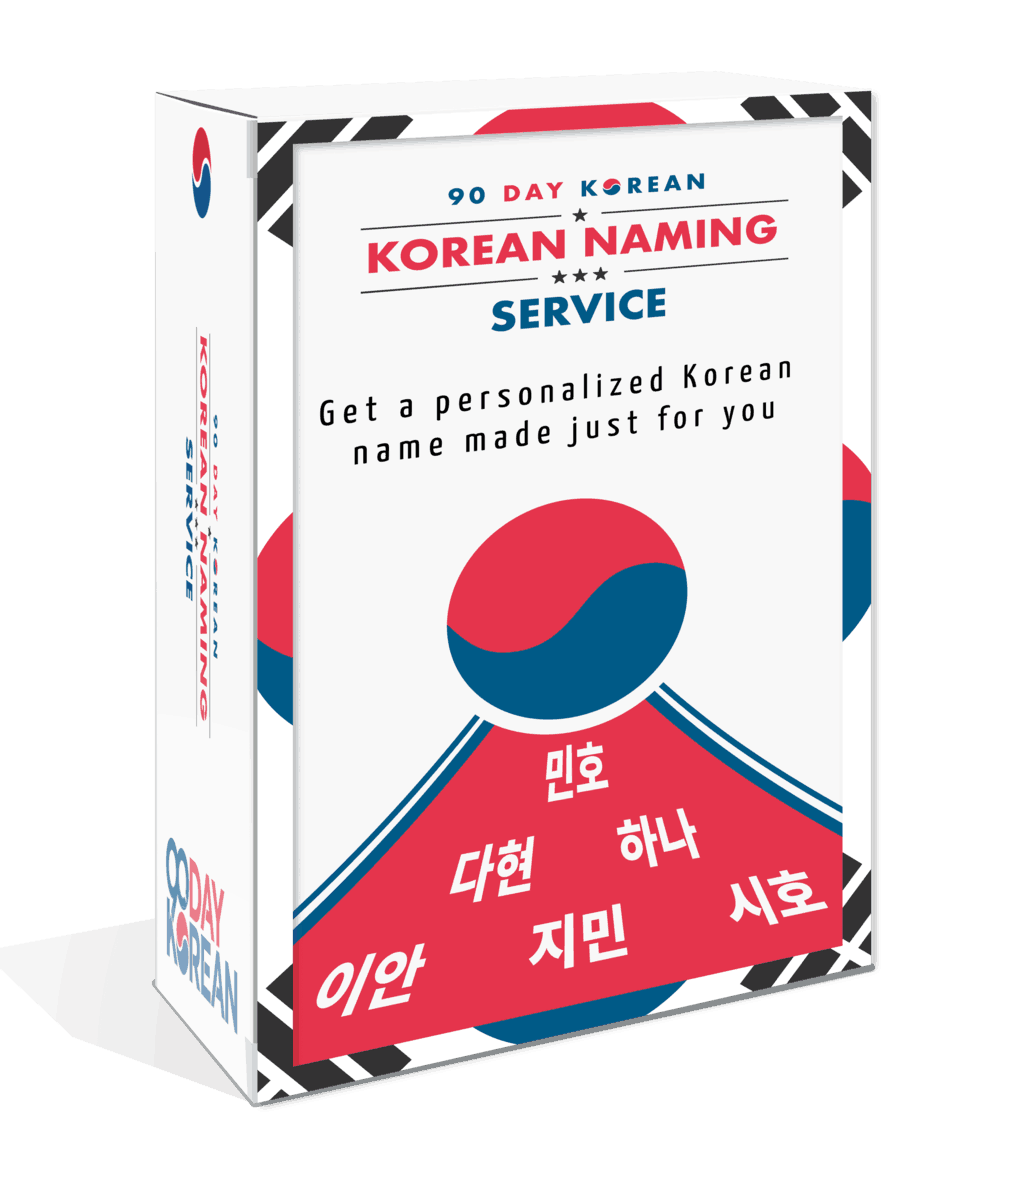 90 Day Korean Naming Service